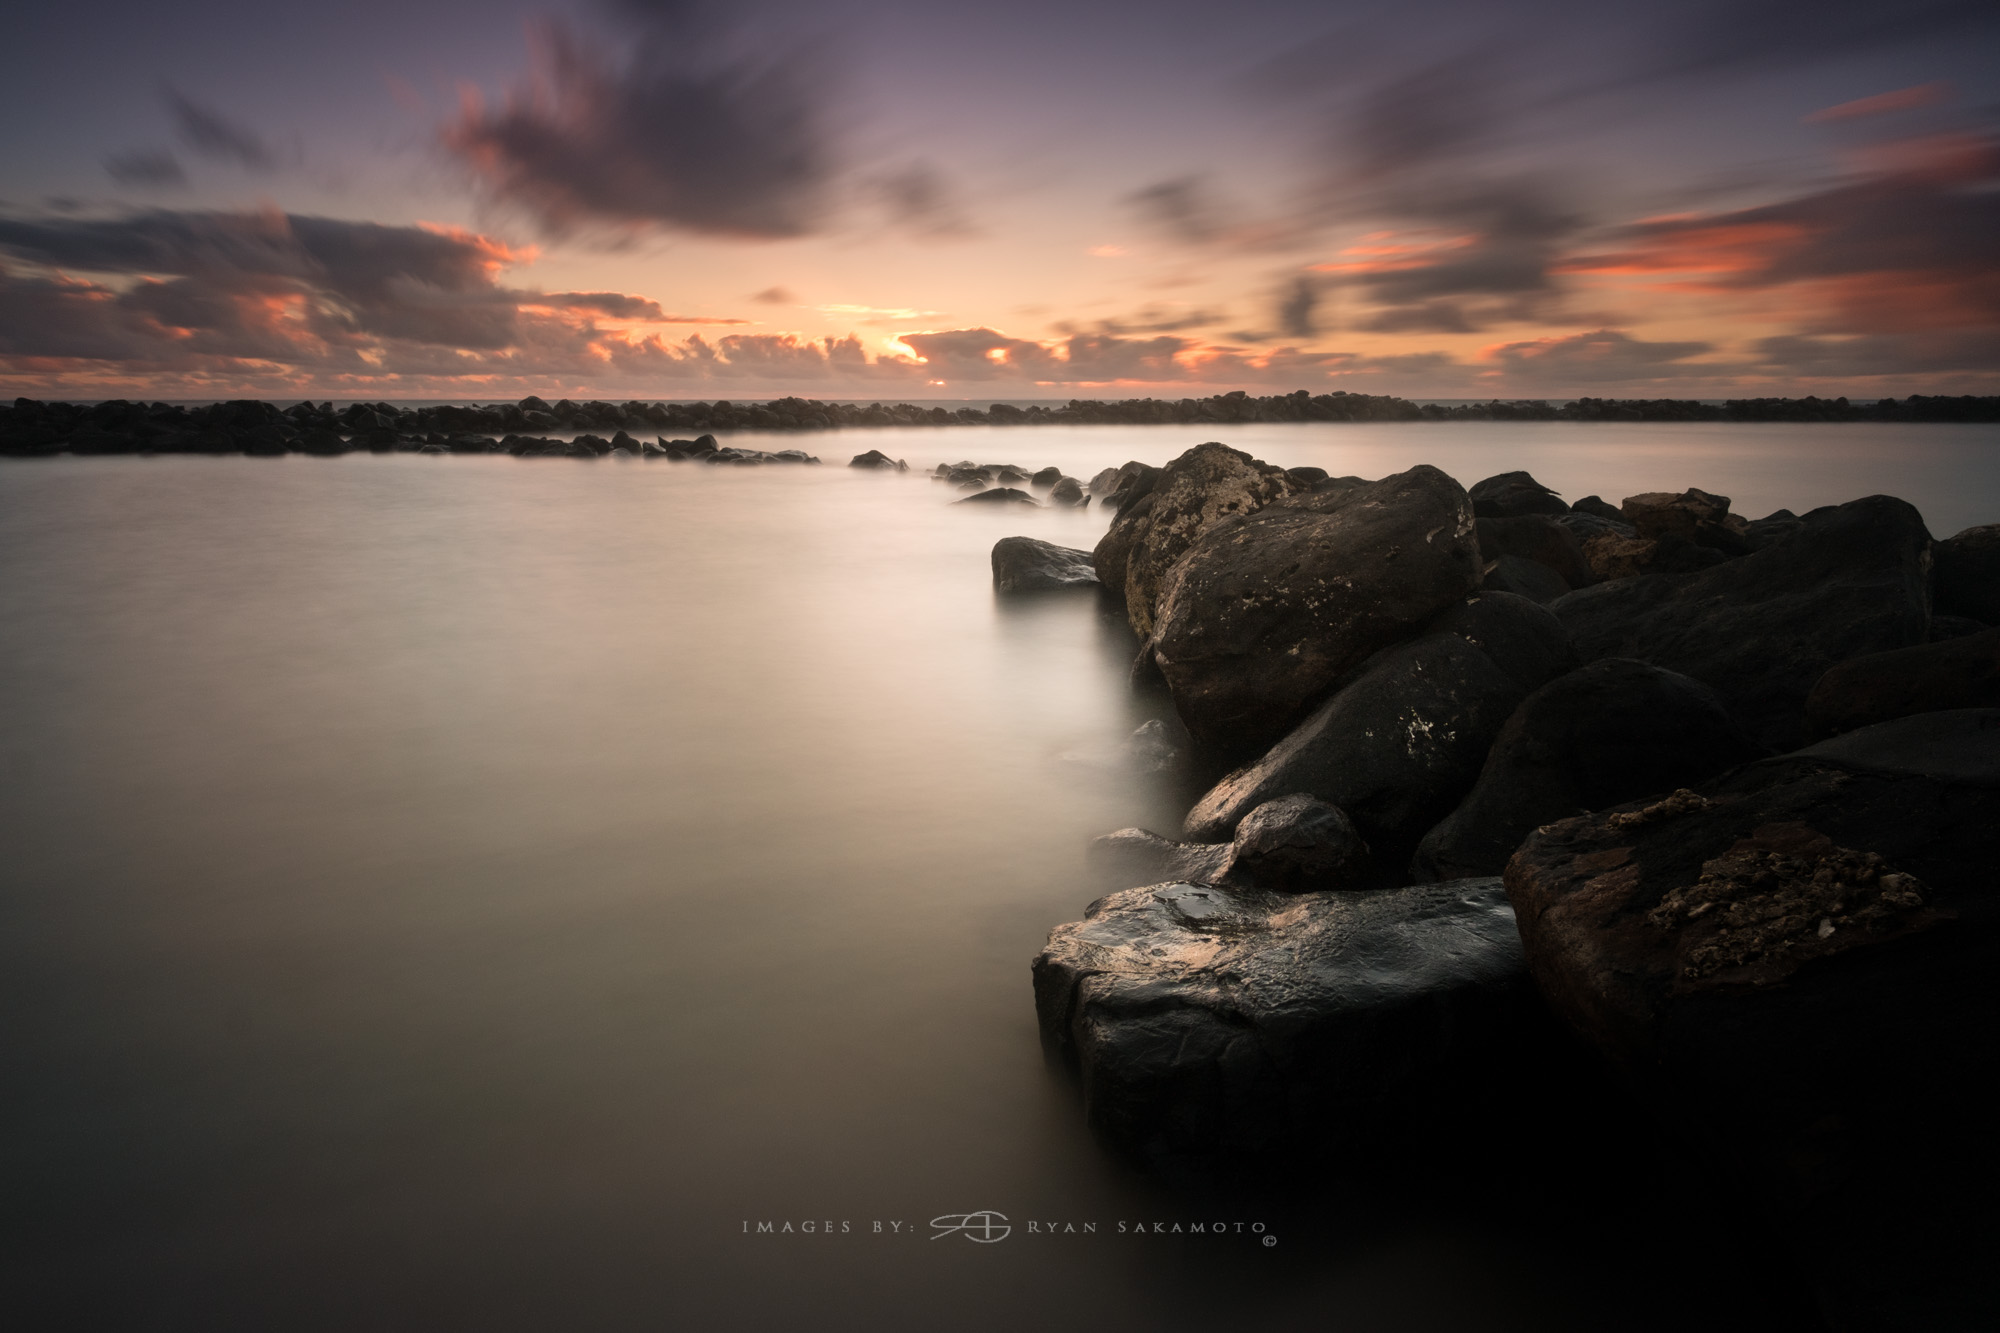 Kauai Sunrise  Lee Filter Big Stopper & 3 stop medium grad  Fuji XPro 2  |  60 sec. |  f/11|  ISO 200  |  Zeiss Touit 2.8/12mm  Edited in Lightroom & Photoshop CC 2015  Copyright 2016 Ryan Sakamoto, All rights reserved